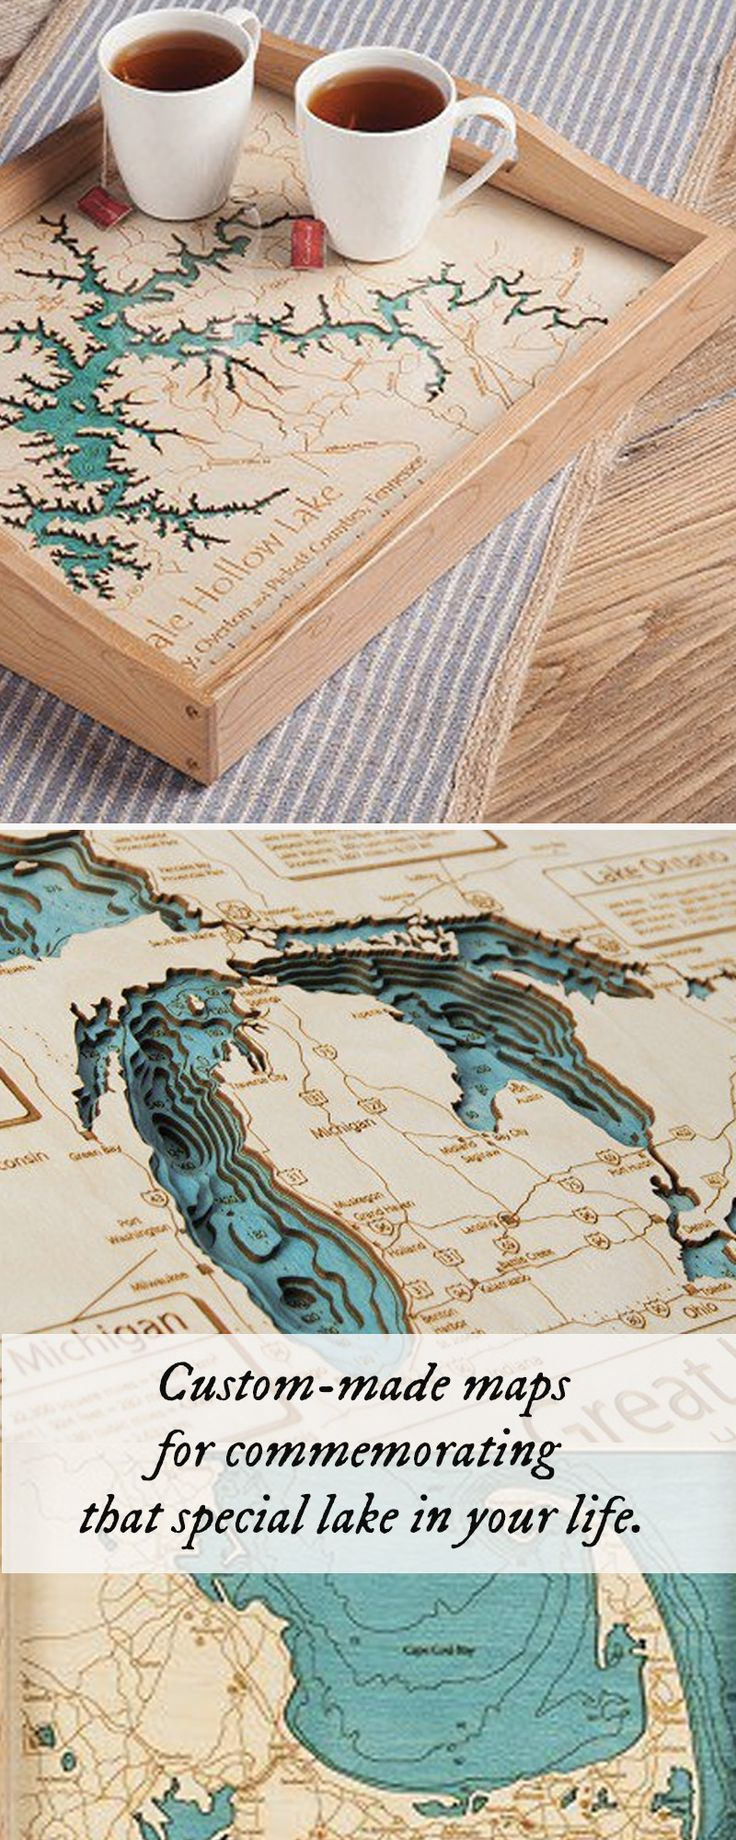 Personalized wooden lake maps 455 best Maps